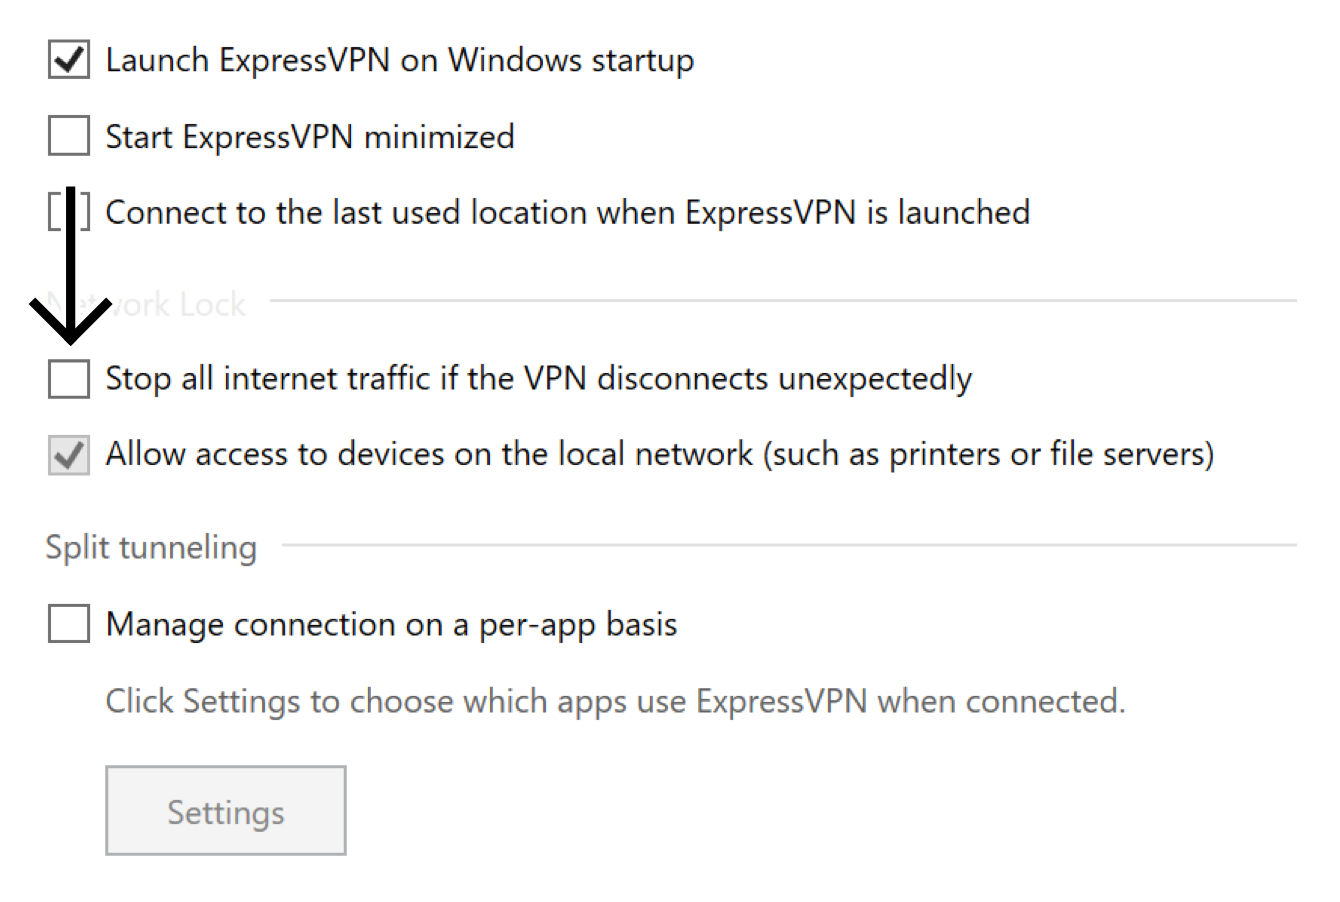 """Uncheck the box for """"Stop all internet traffic if the VPN disconnects unexpectedly."""""""